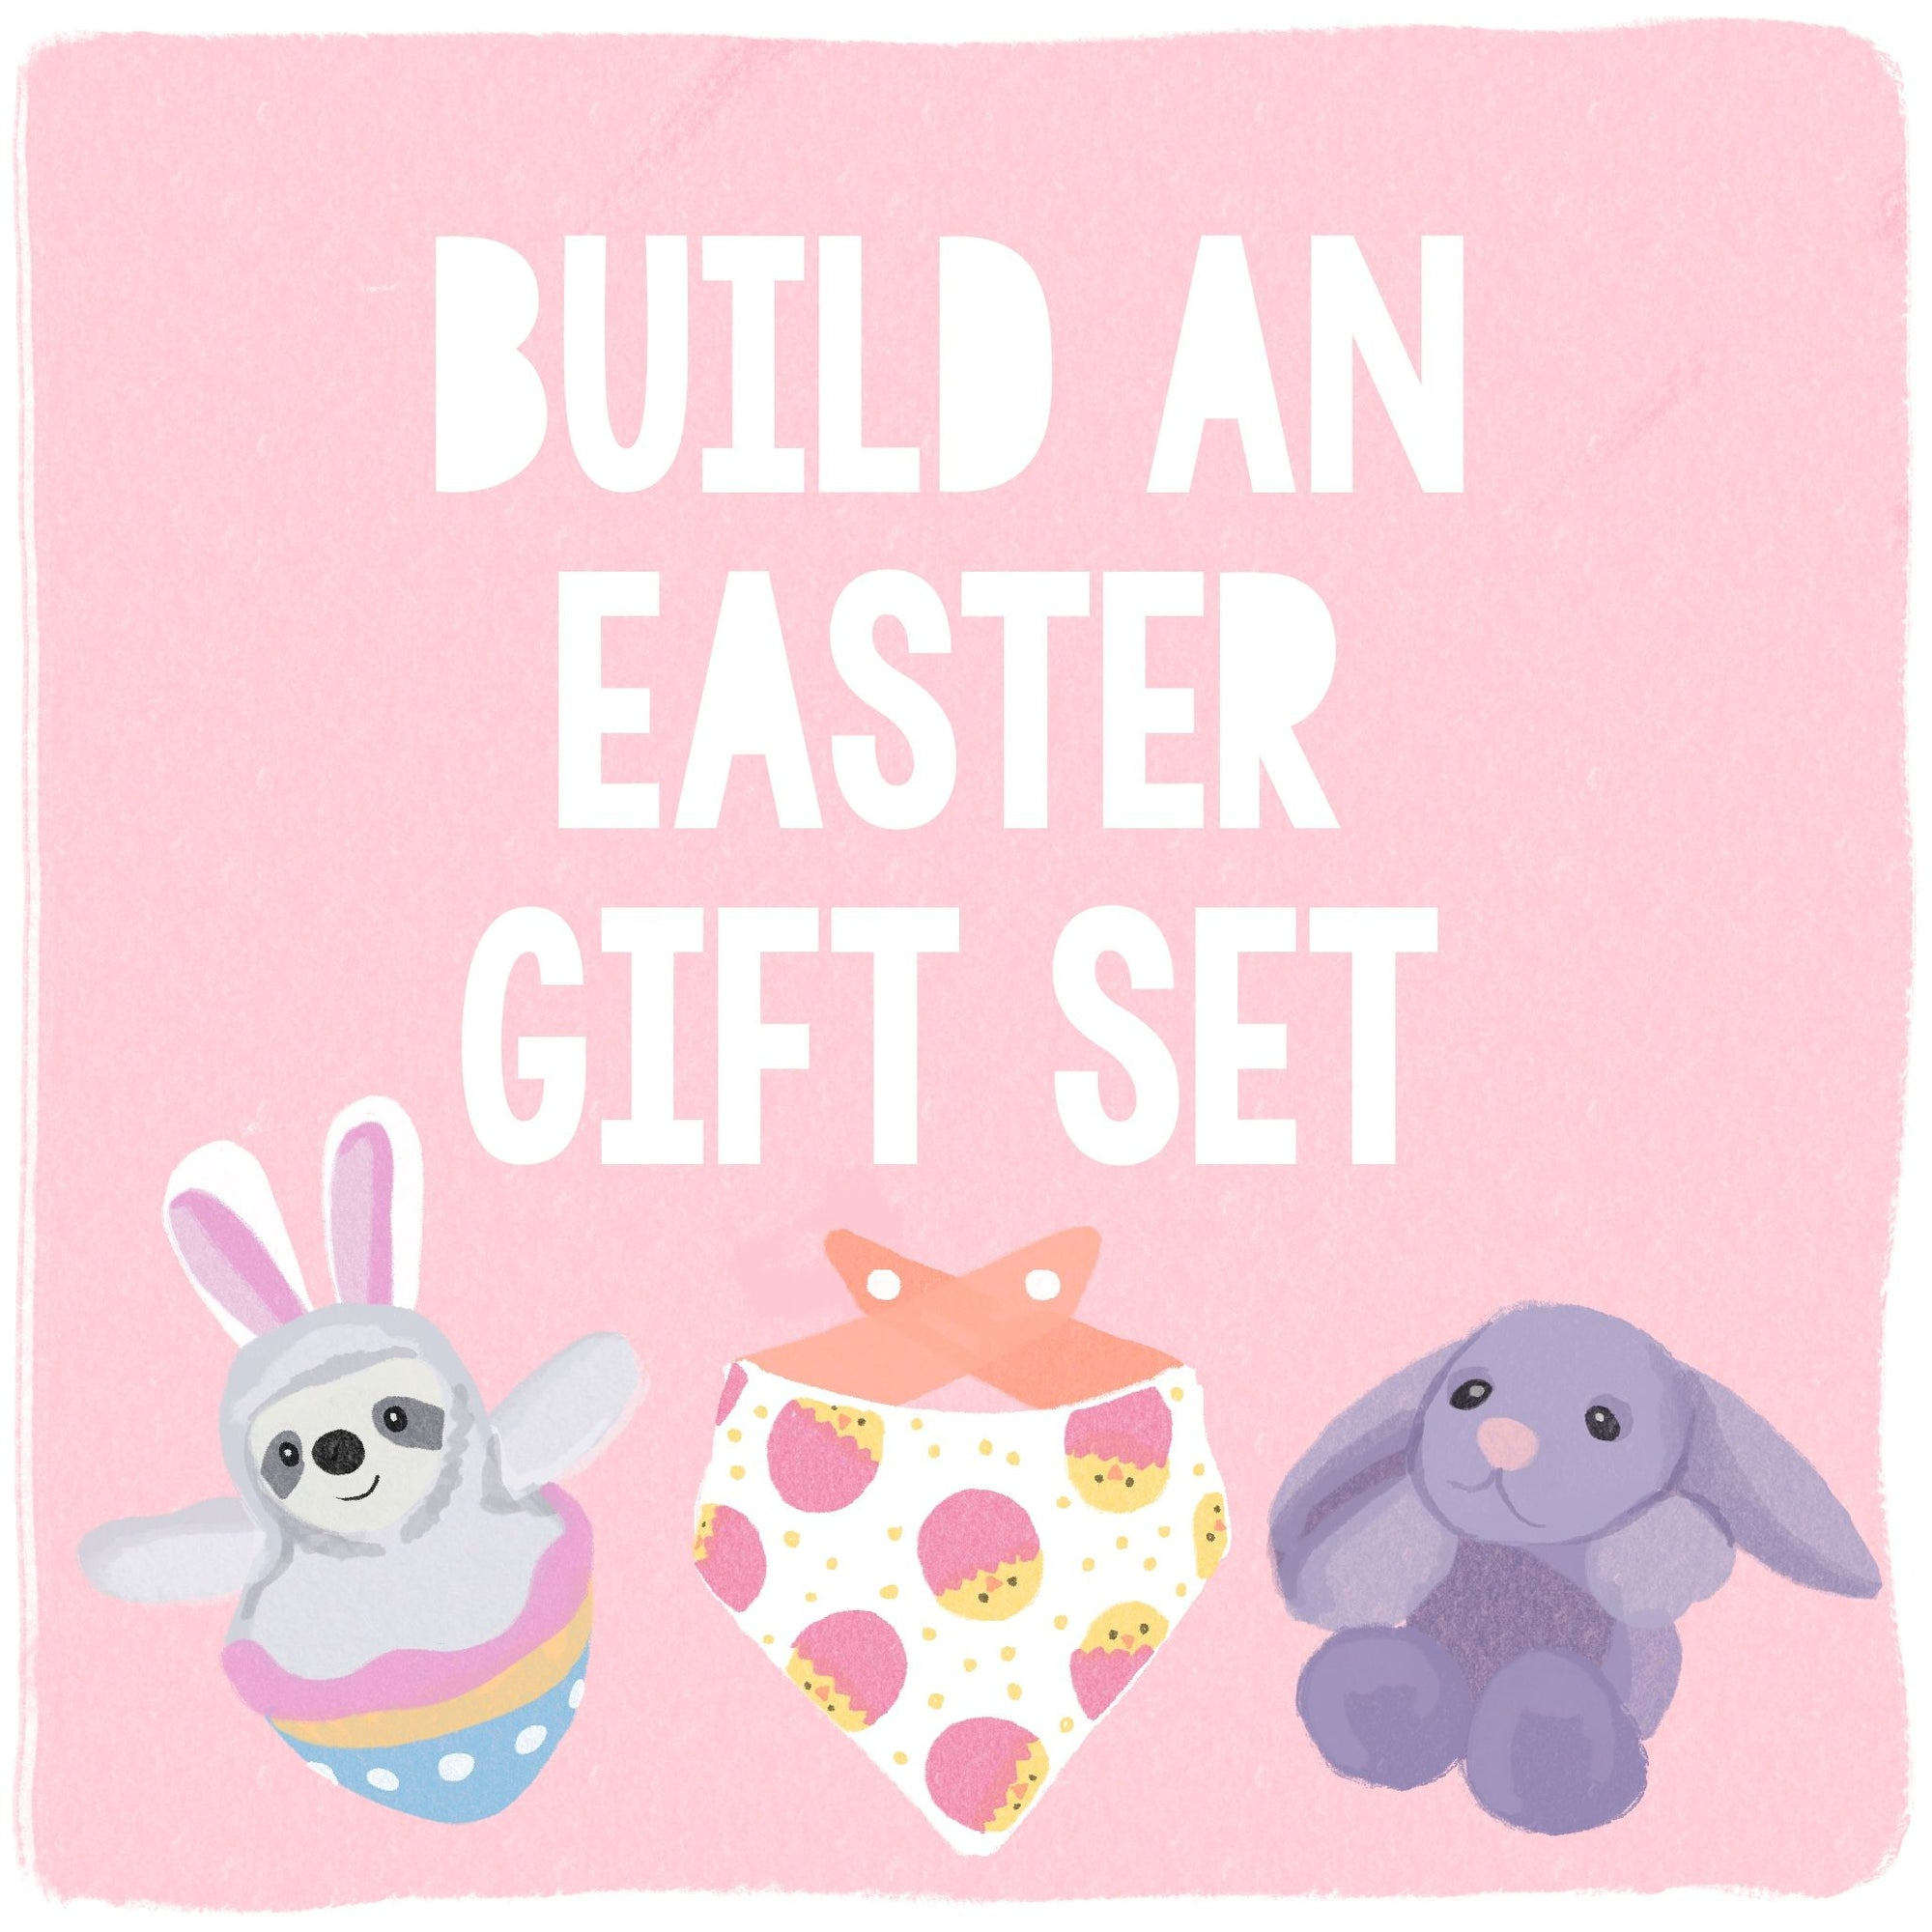 BUILD AN EASTER GIFT SET-svi_hidden-Gift Spawt